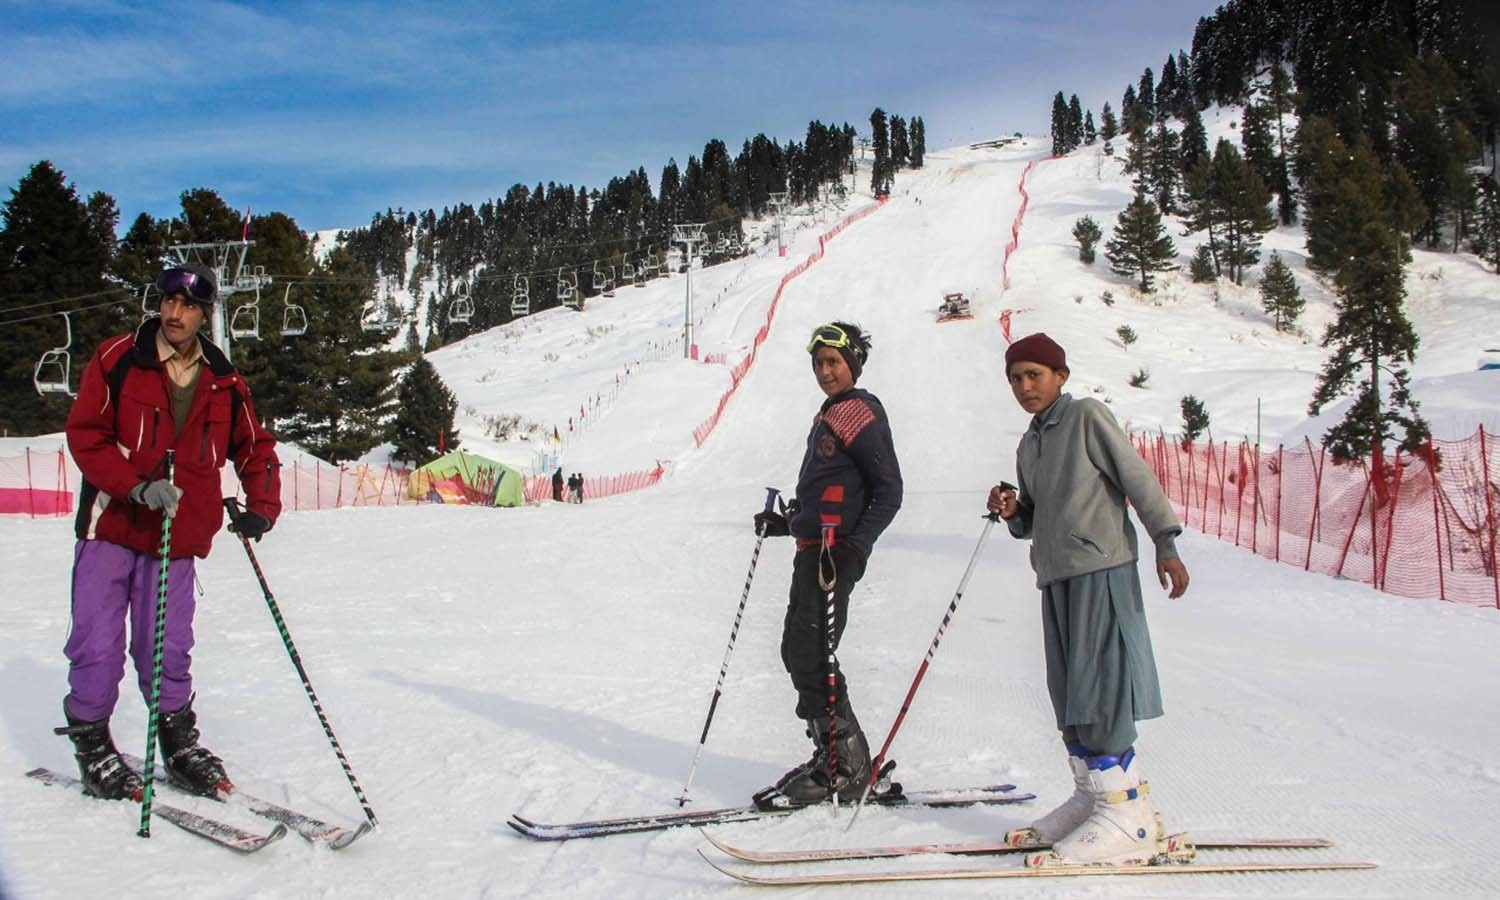 Local skiiers stand at the foot of the slope. ─ Photo by author